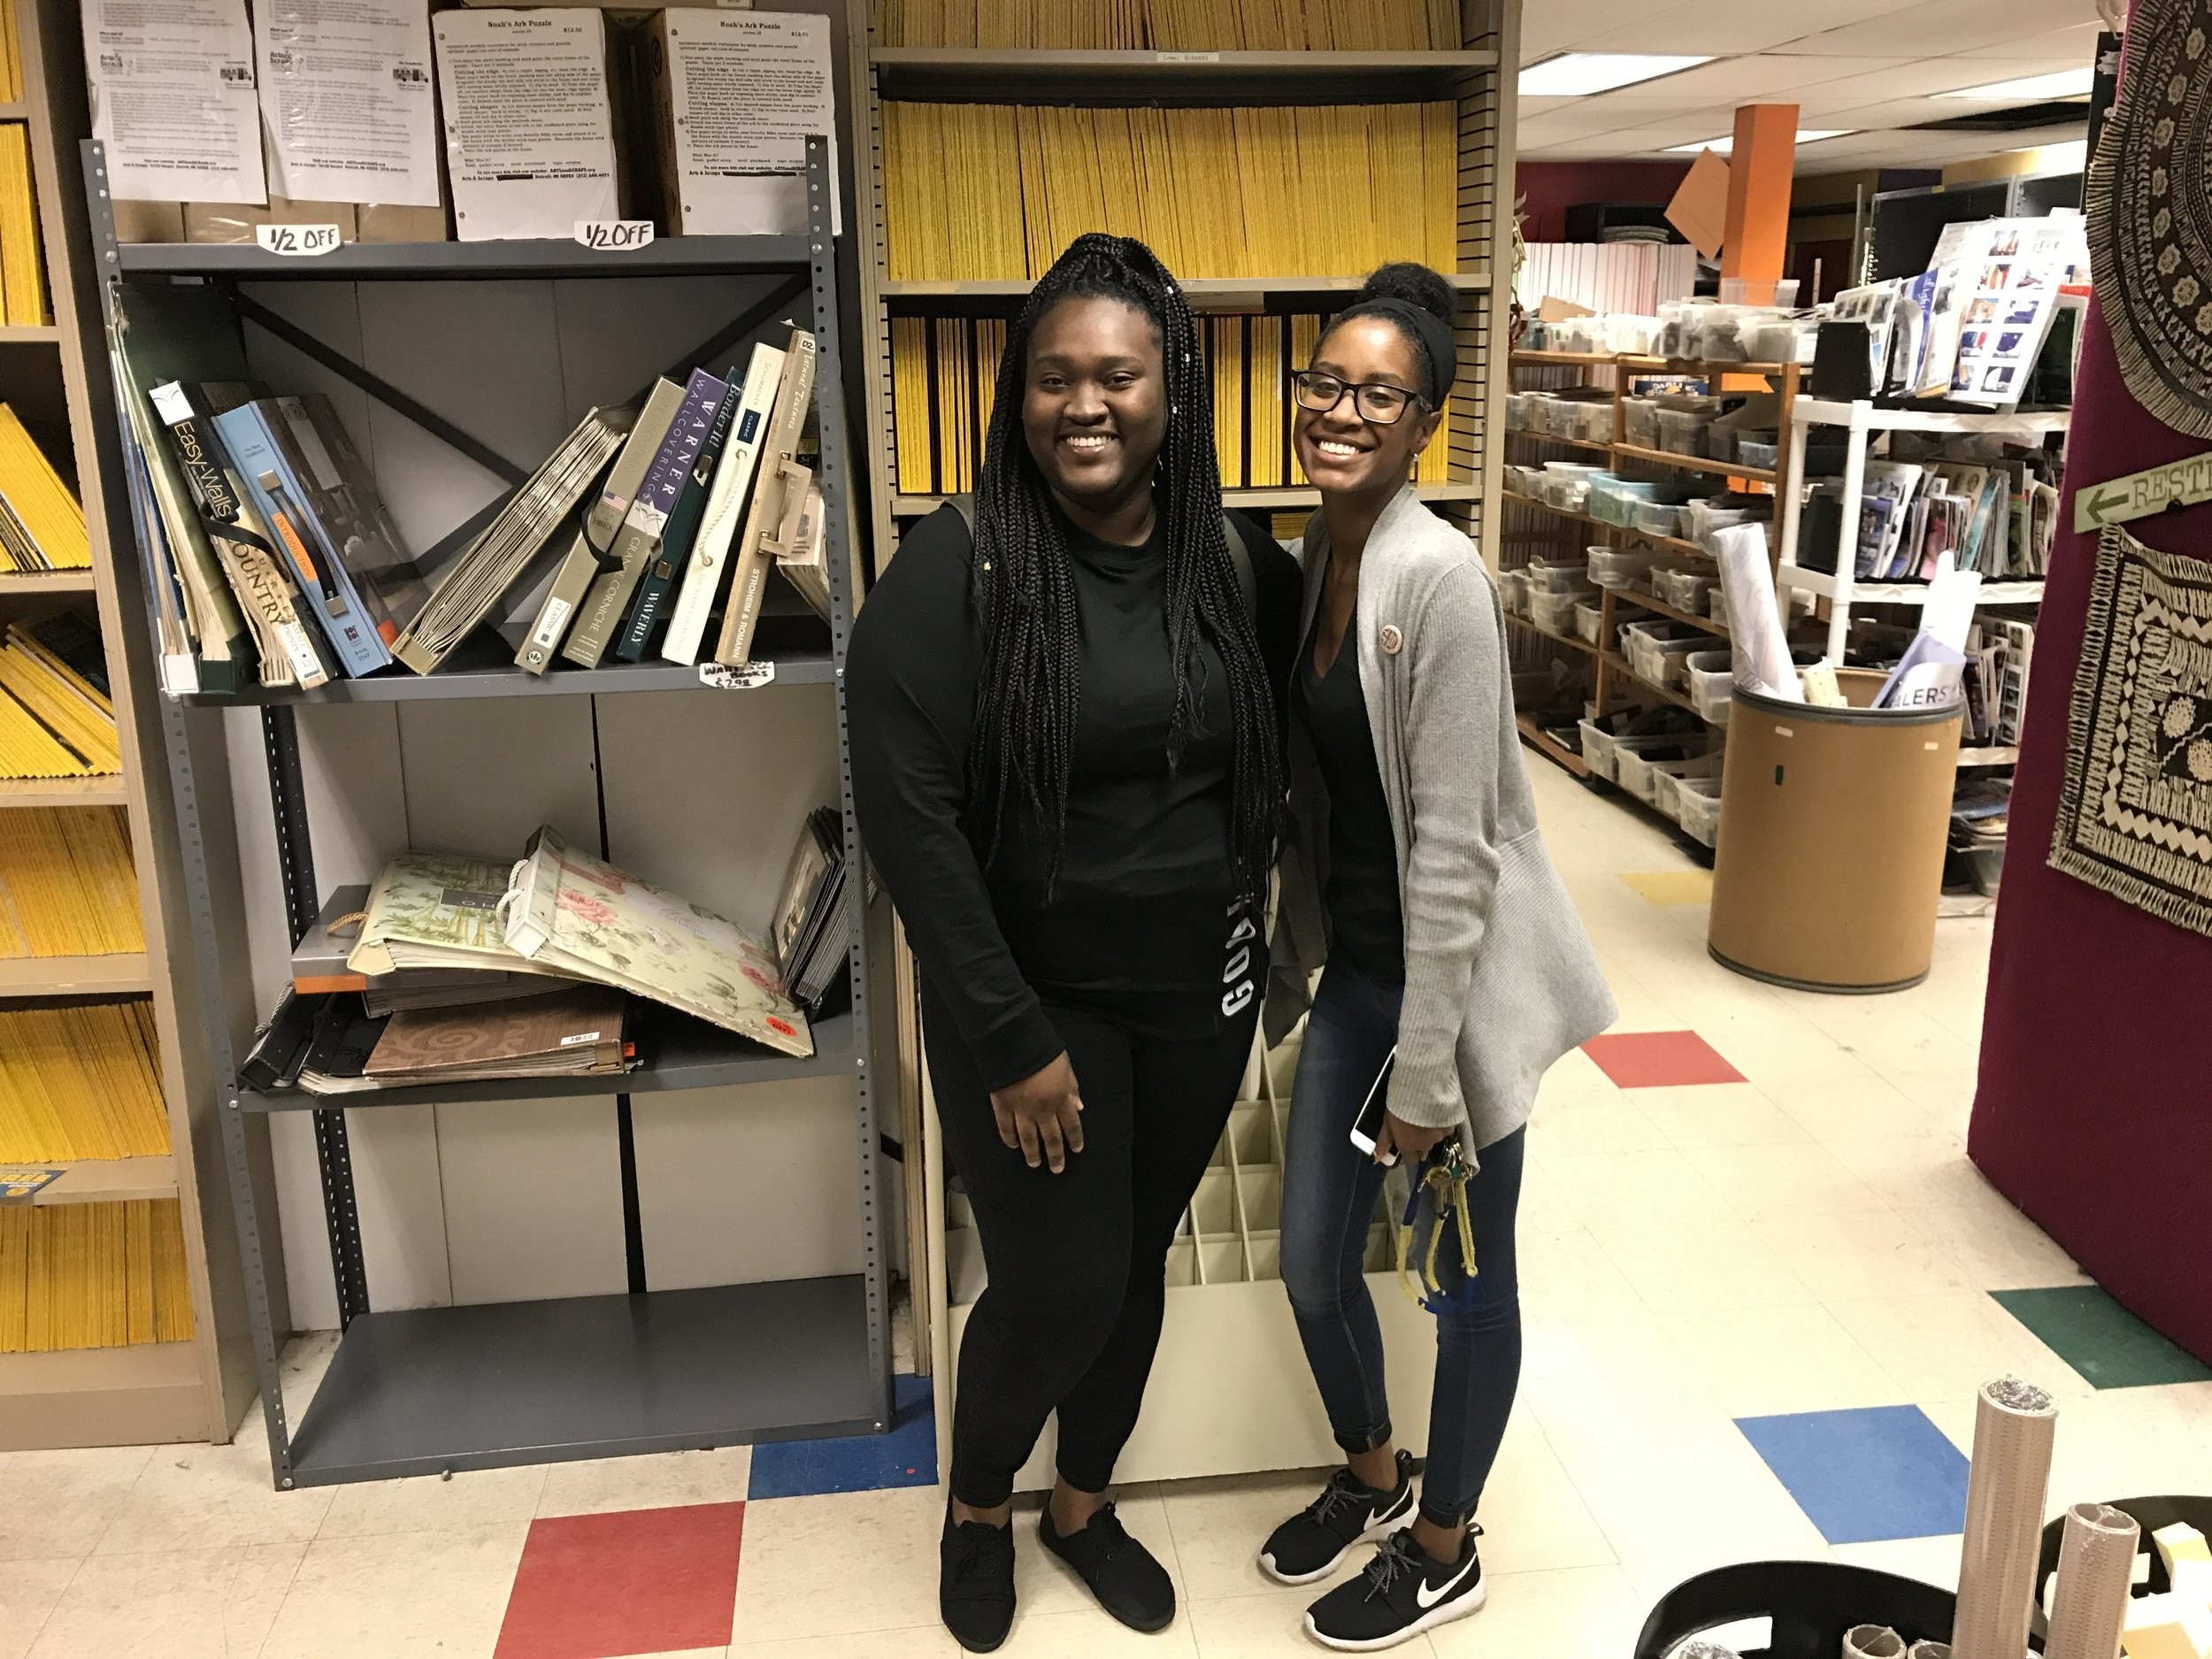 Lynda meeting one of Motown's Project Partners, Arts & Scraps. Here she is (left) pictured with their Warehouse Coordinator, Tonia (right).